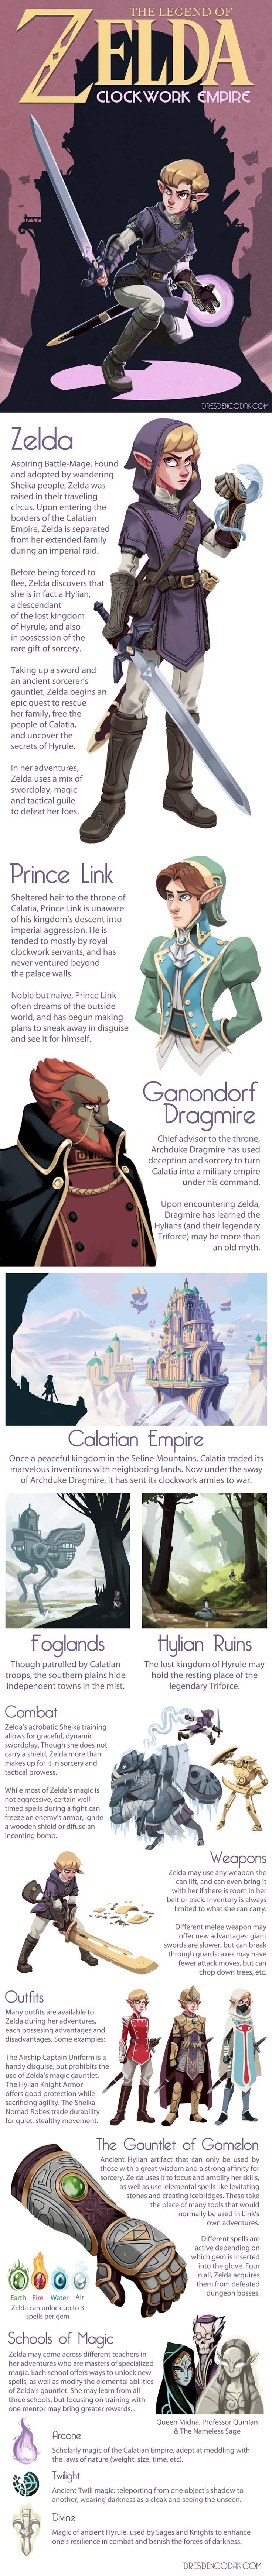 The Legend of Zelda: Clockwork Empire -http://dresdencodak.tumblr.com/post/47724463171/inspired-by-anita-sarkeesians-video-game-tropes